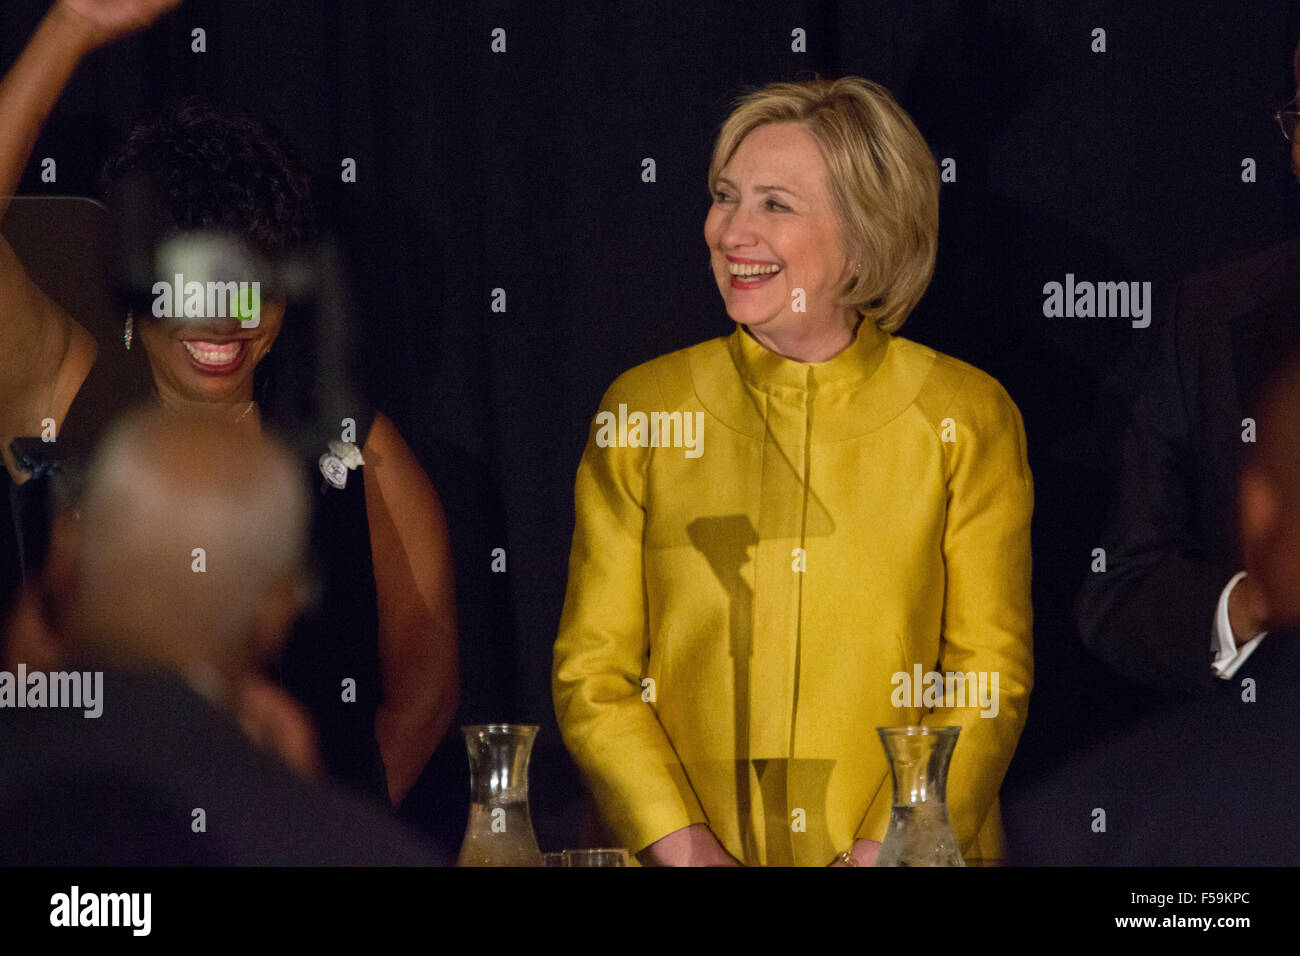 Charleston, SC., USA. 30th October, 2015. Former Secretary of State and Democratic presidential candidate Hillary - Stock Image